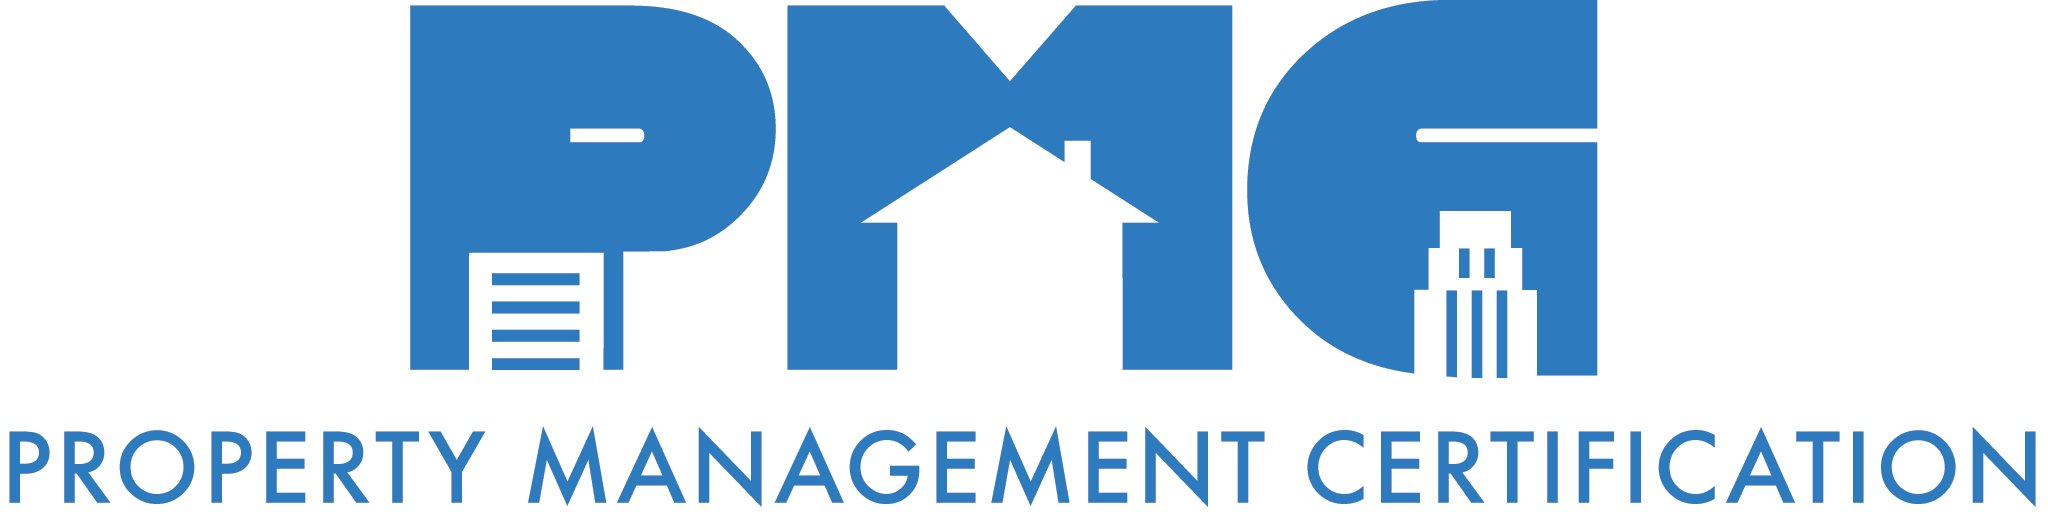 Property Management Certification logo